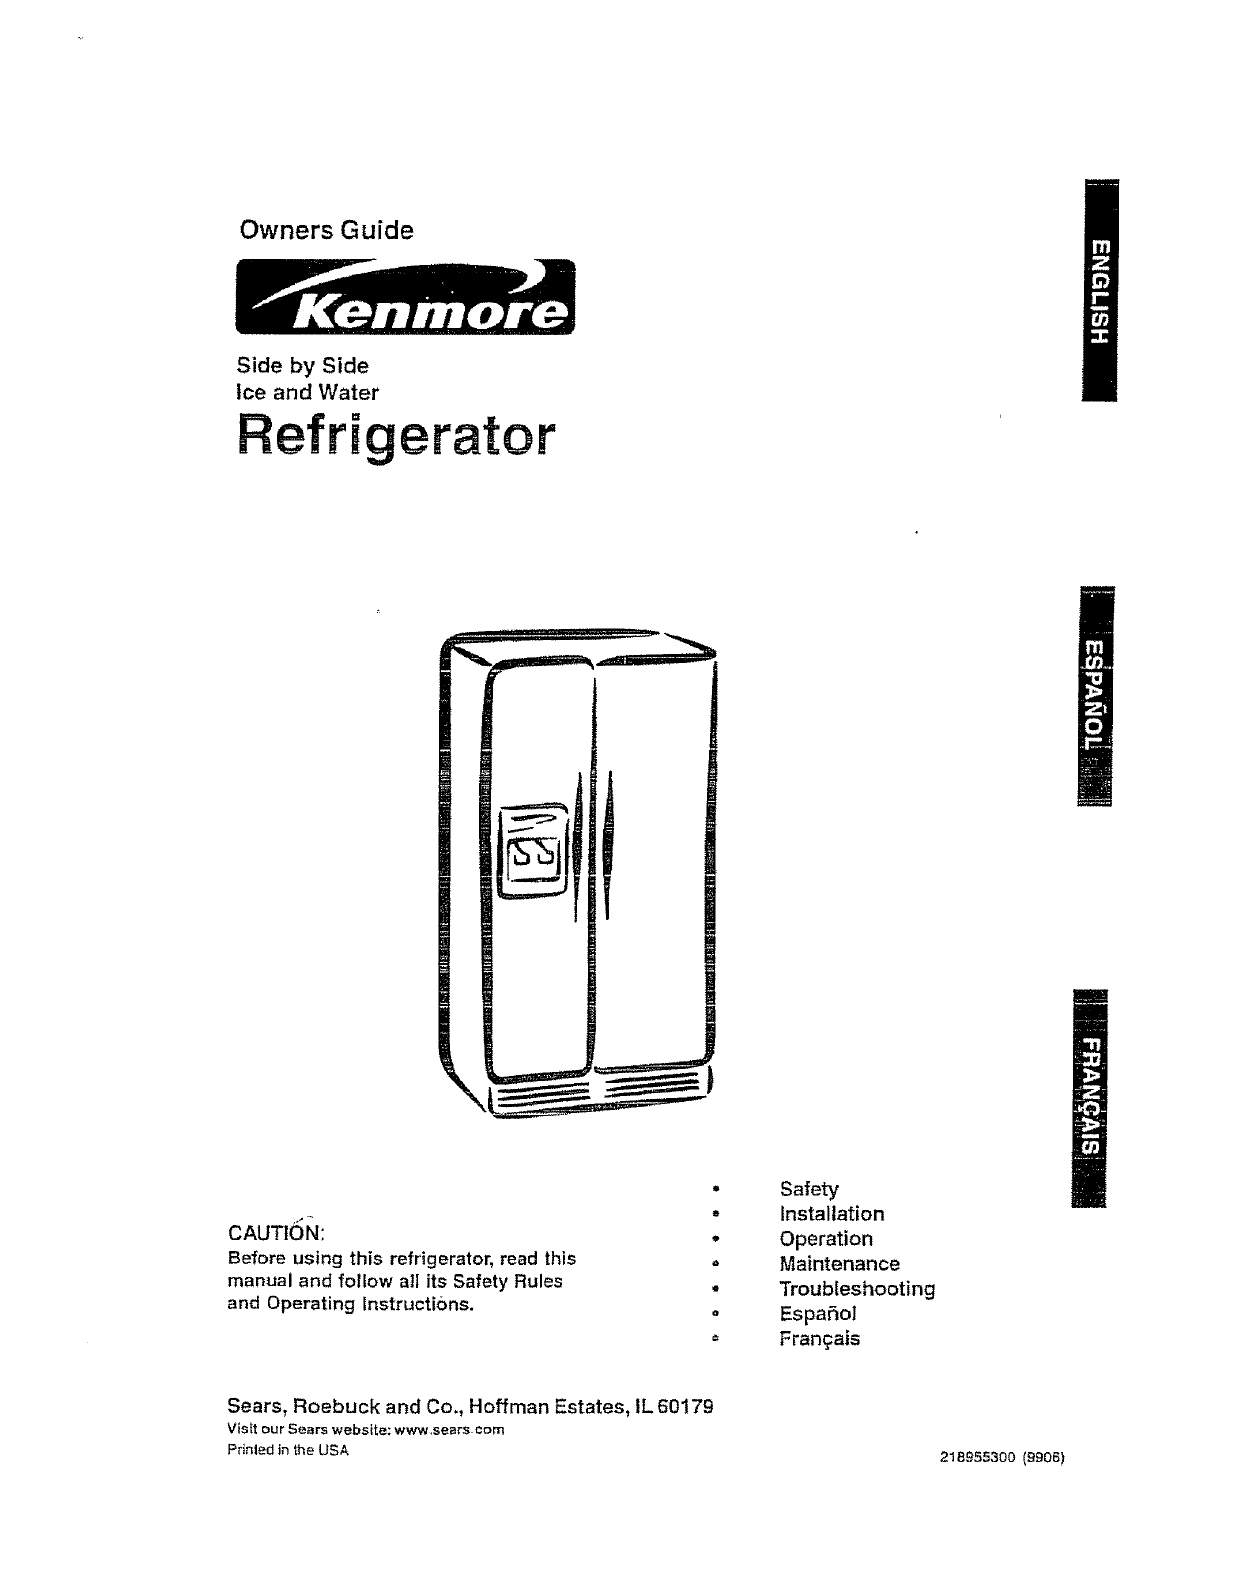 Lovely Kenmore Side by Side Refrigerator Manual